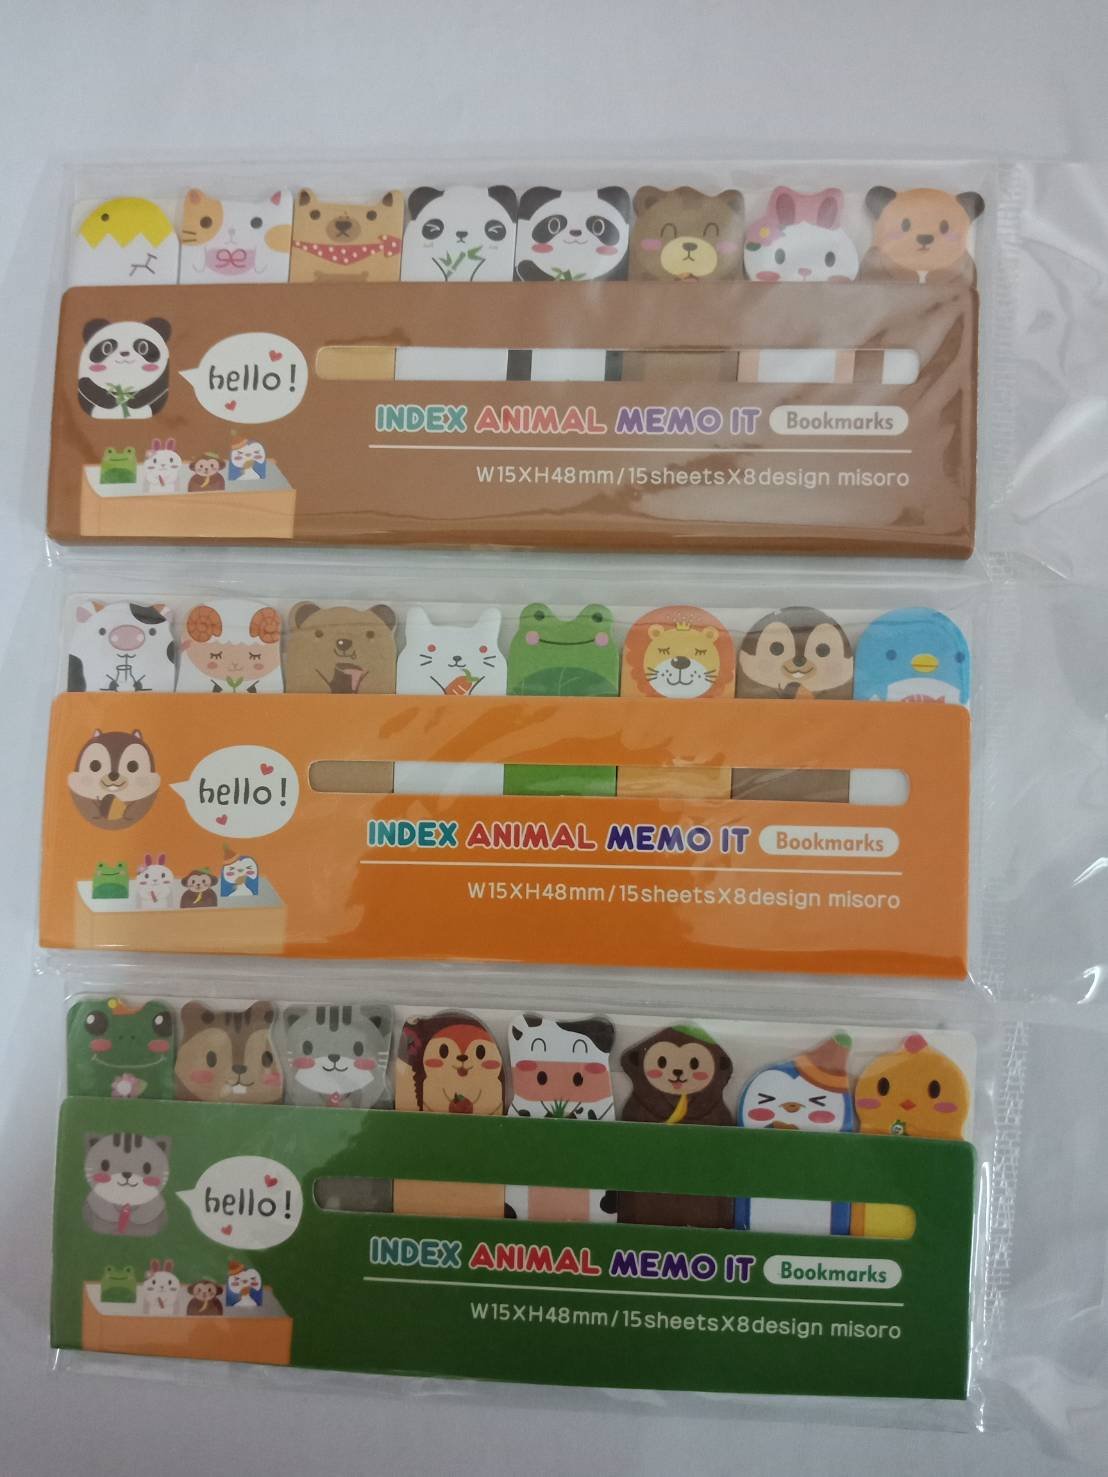 Stick Note HT1401-680 Index Animal Memo It Bookmarks ขนาด 53x14 mm คละลาย